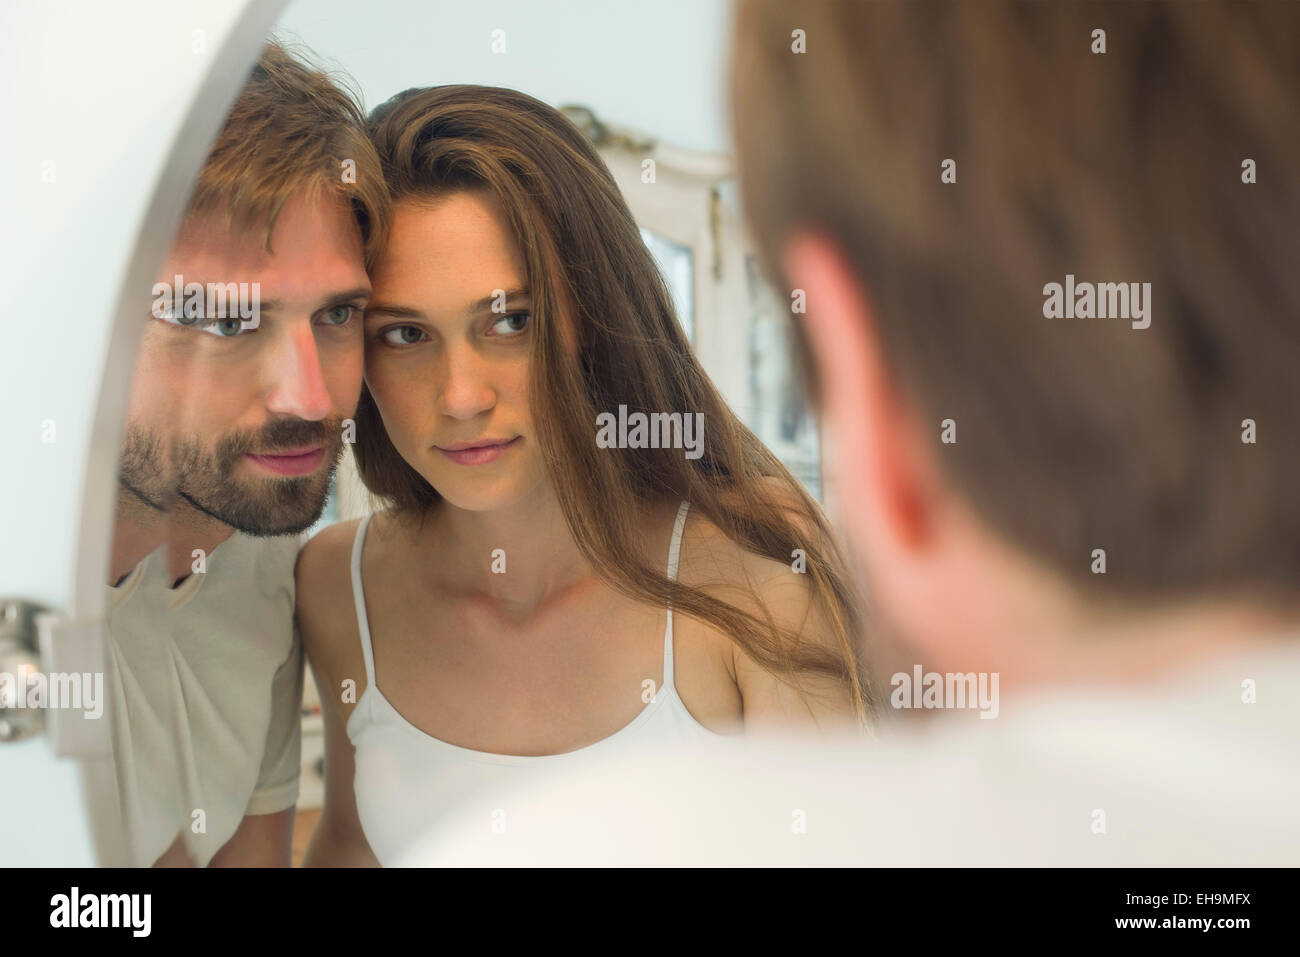 Couple cheek to cheek looking into mirror together - Stock Image